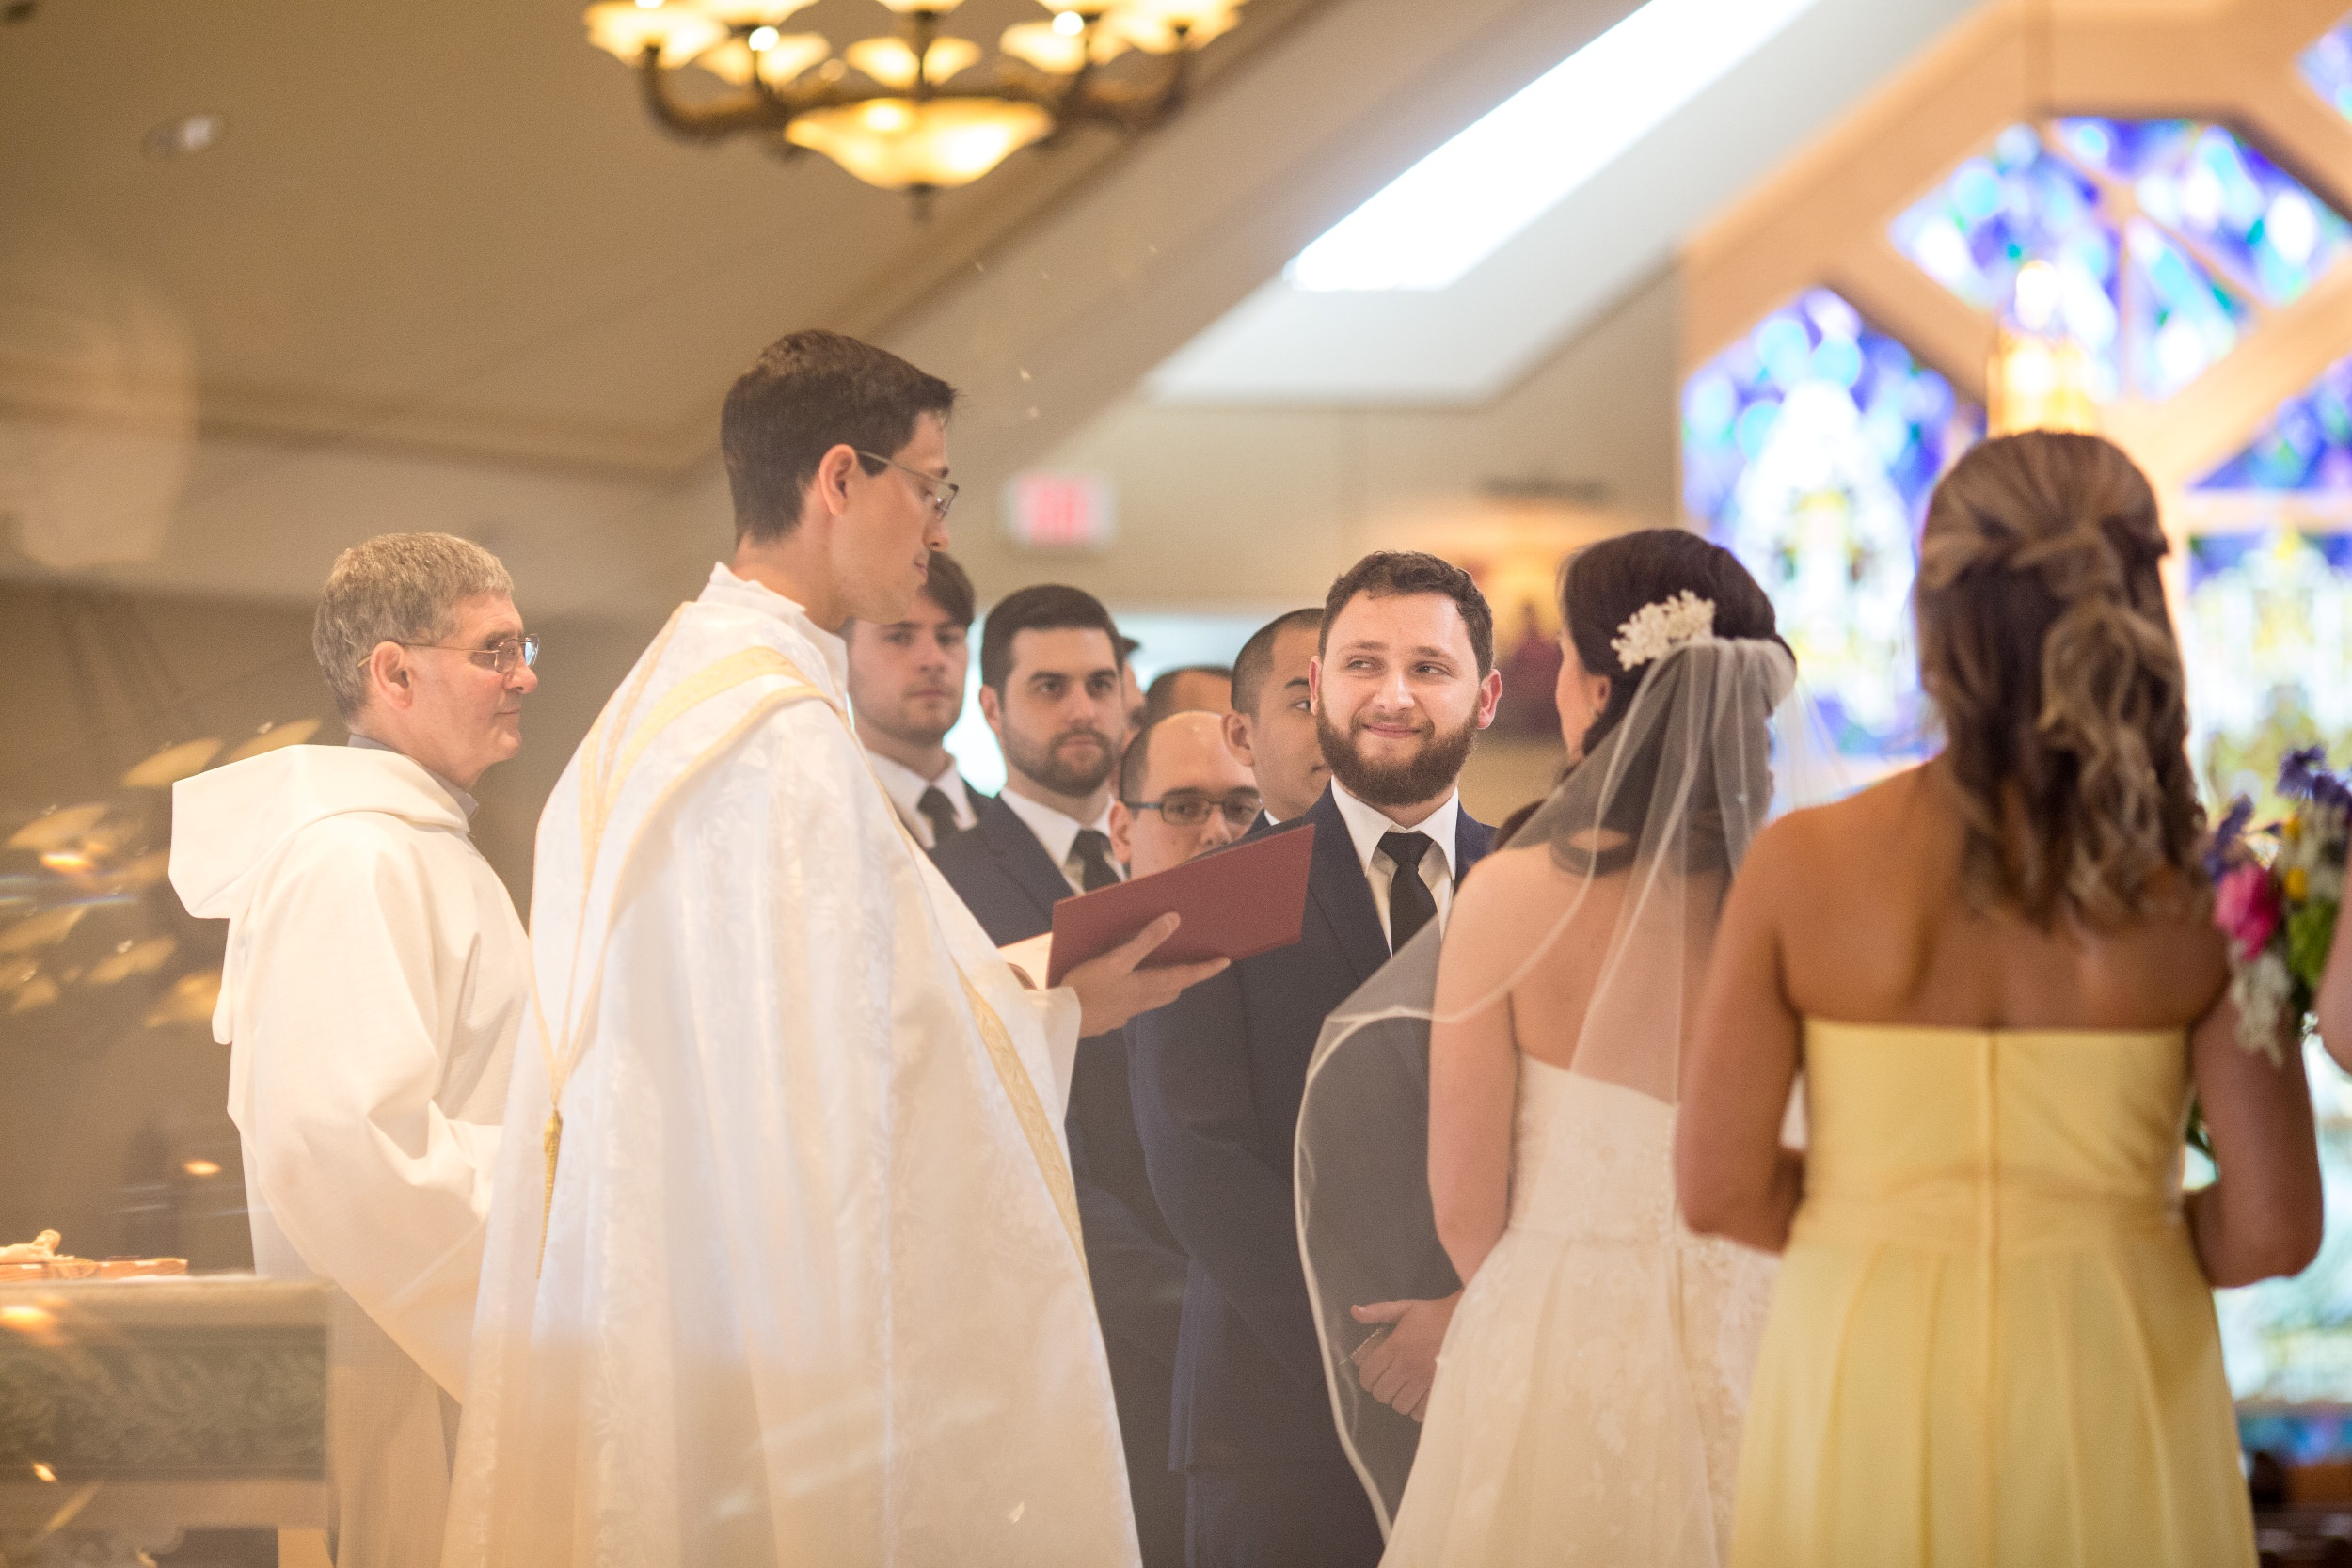 Ceremony at St Mary Magdalen Parish in Media